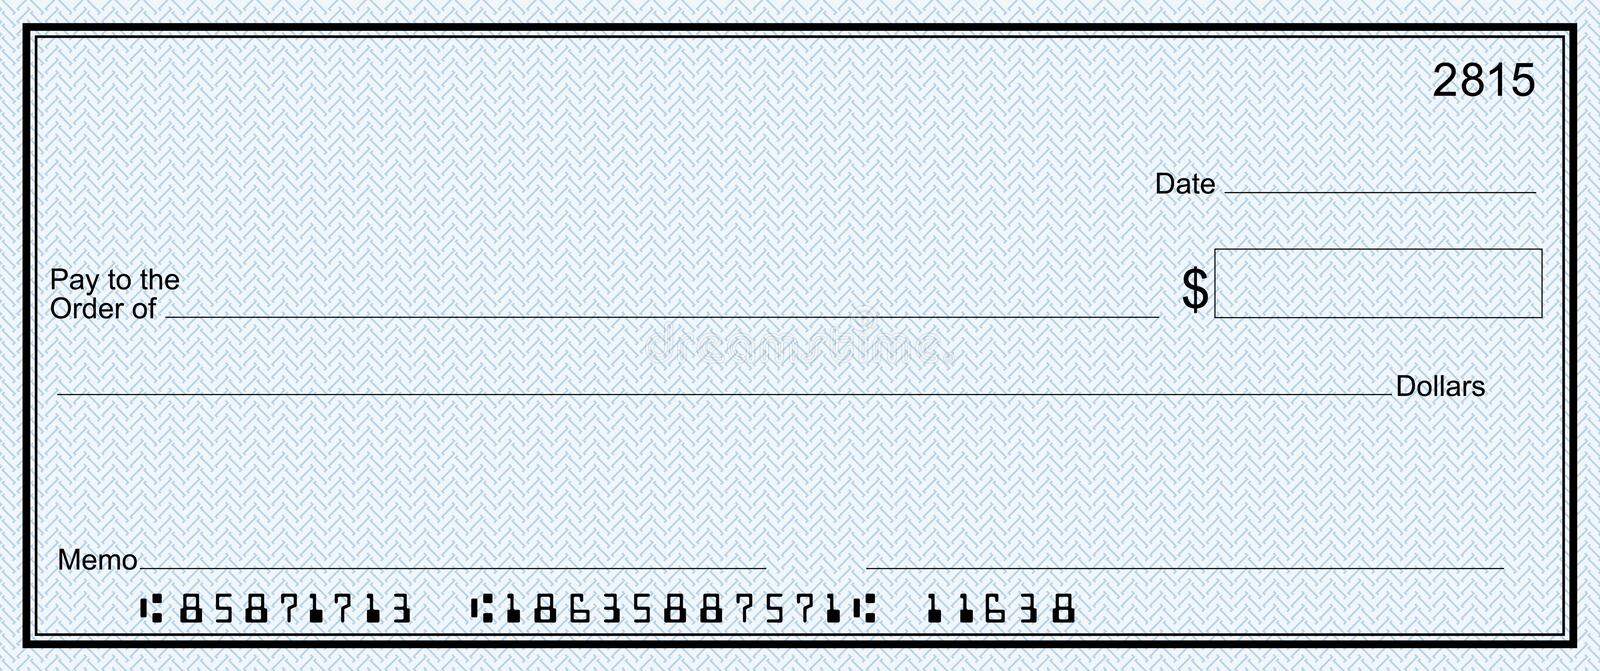 Large bank check with false numbers royalty free illustration